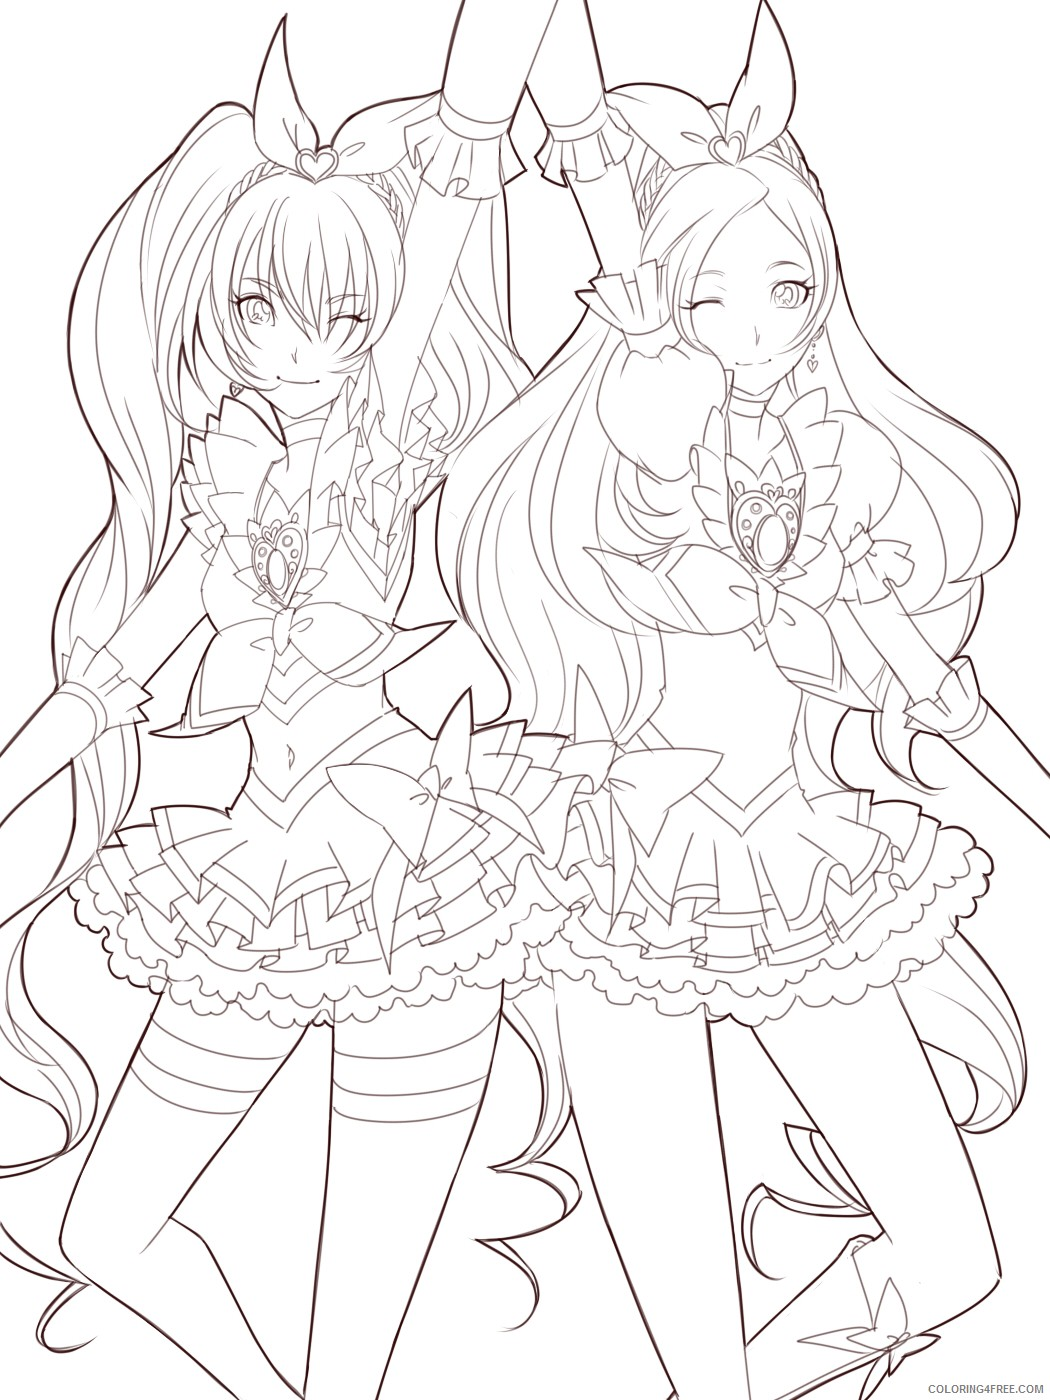 manga girl coloring pages for adults Coloring4free